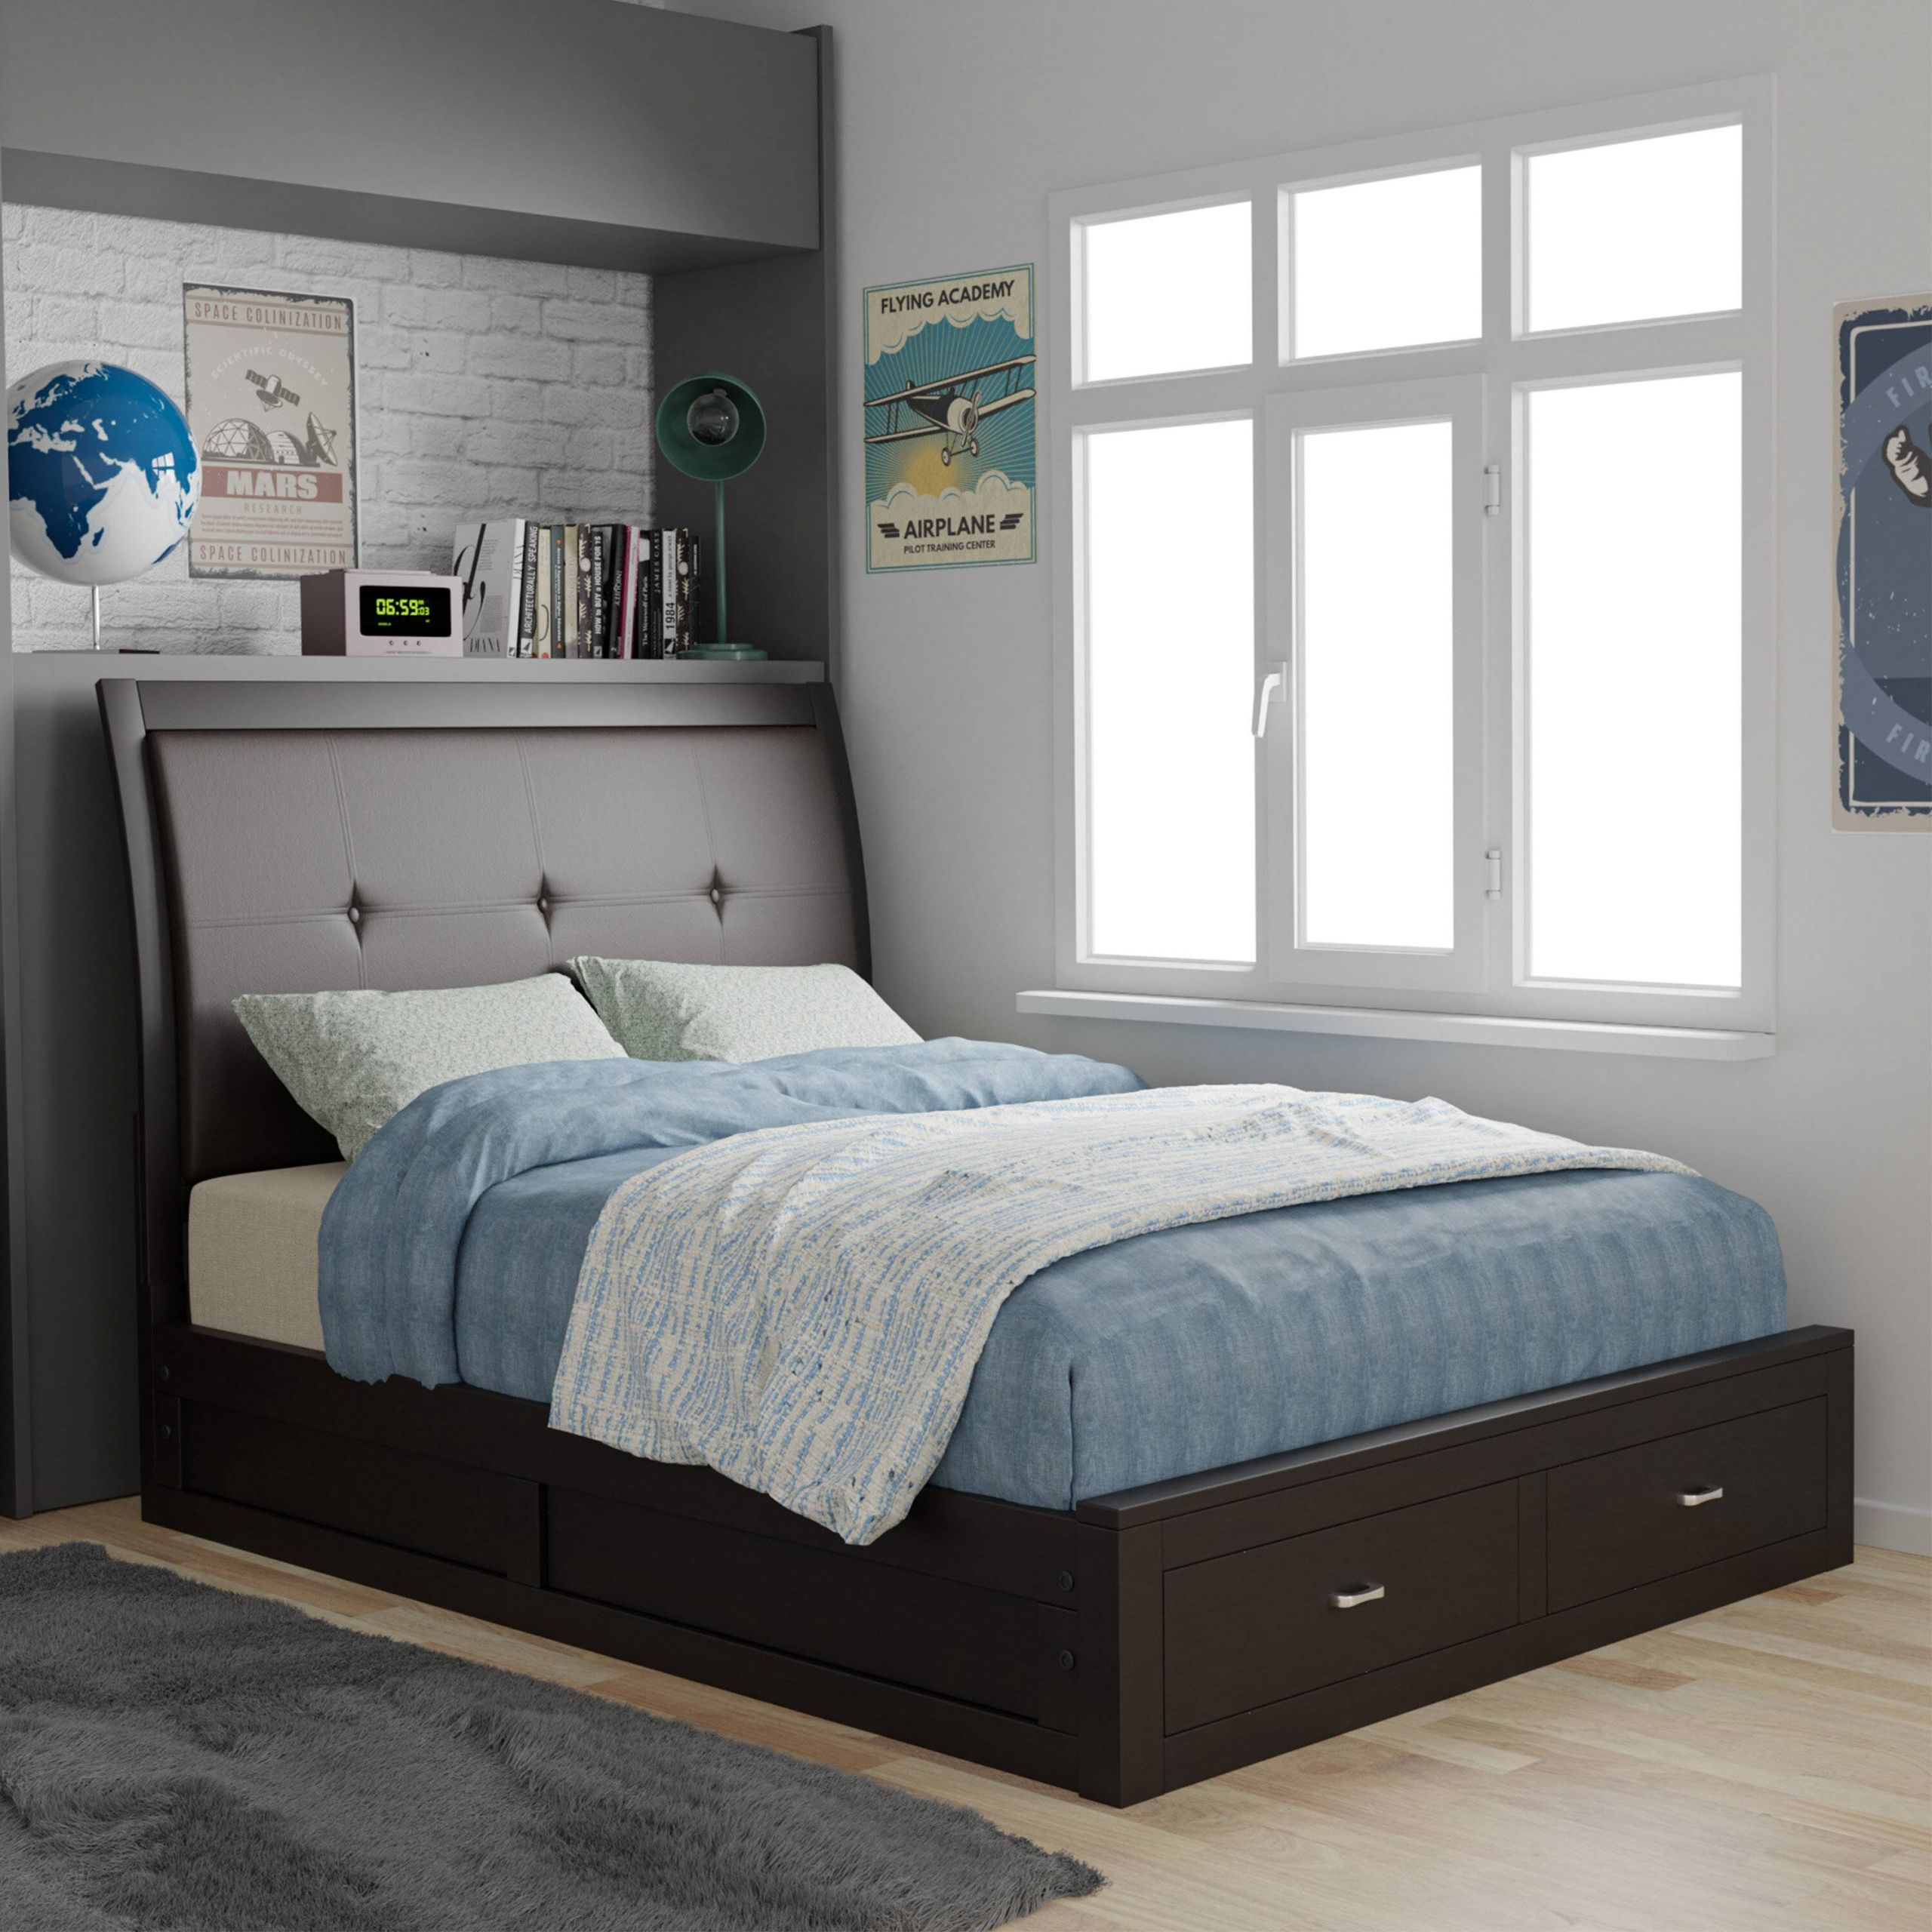 Exceptional Unusual Bed Frames New Hokku Designs Beds You Ll Love In 2020